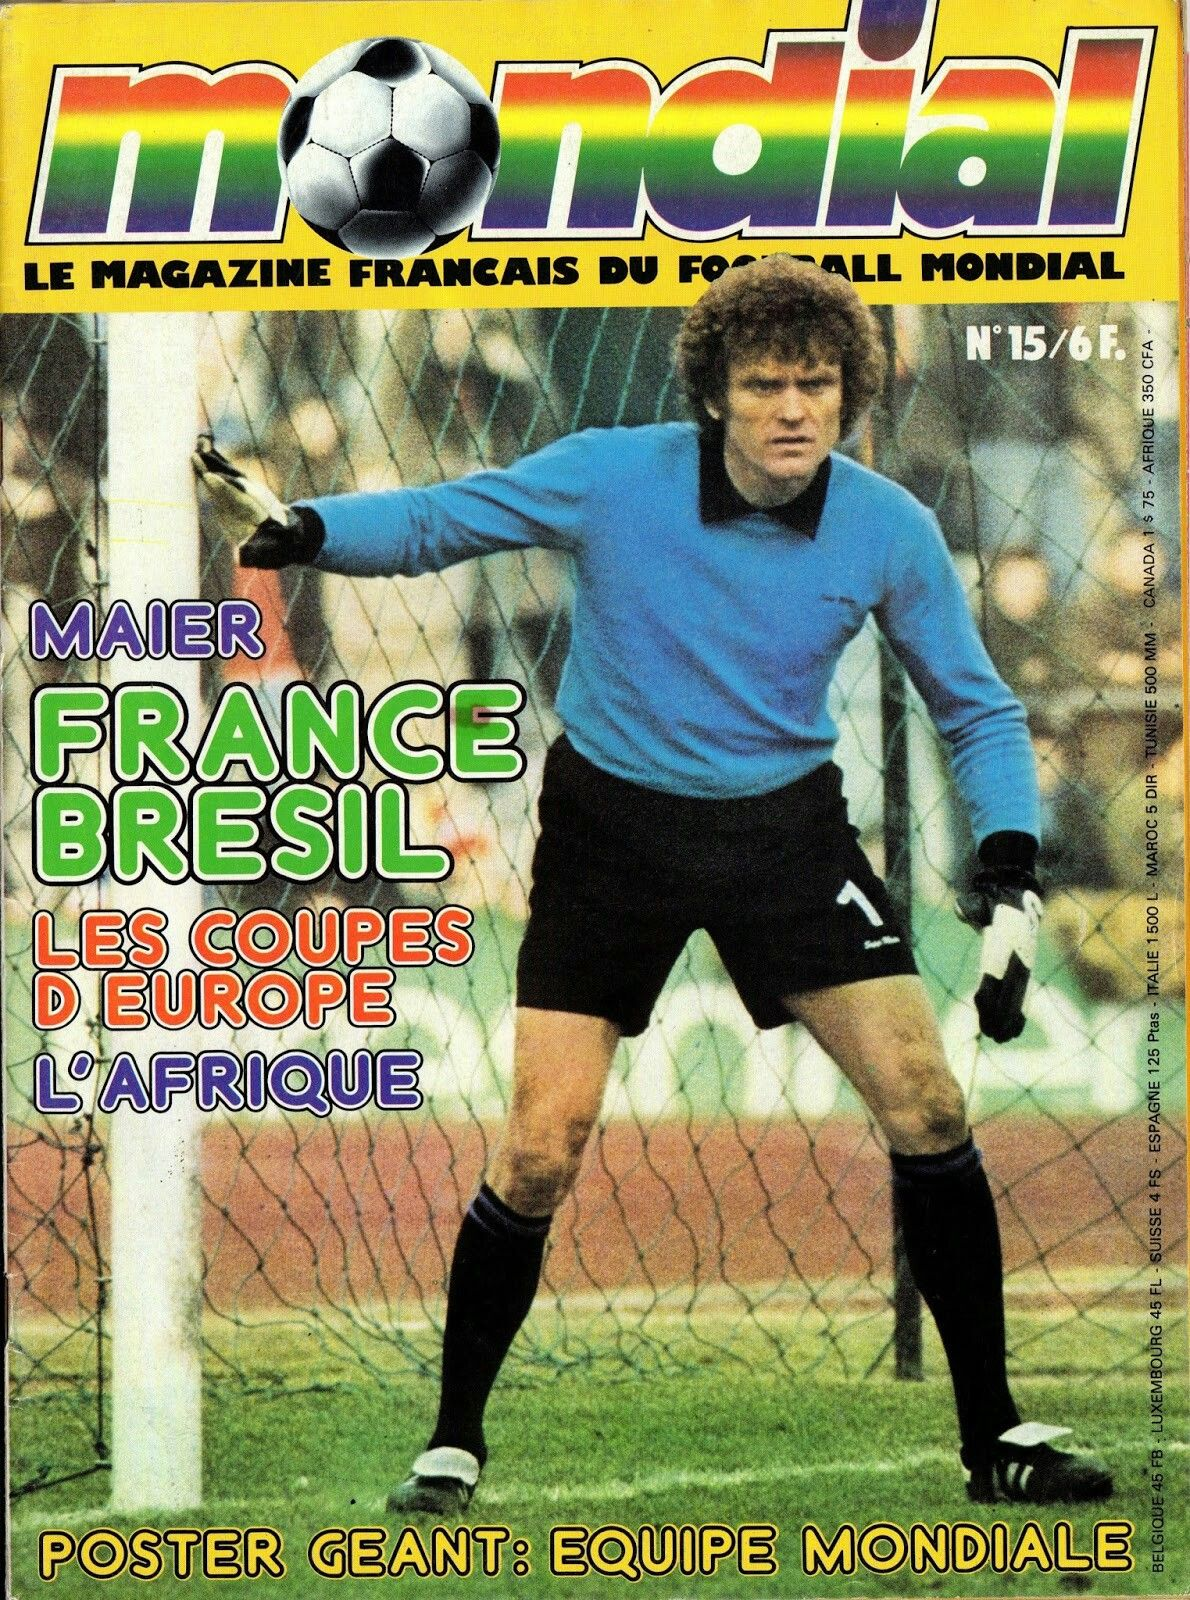 Mondial magazine in April 1978 featuring West Germany keeper Sepp